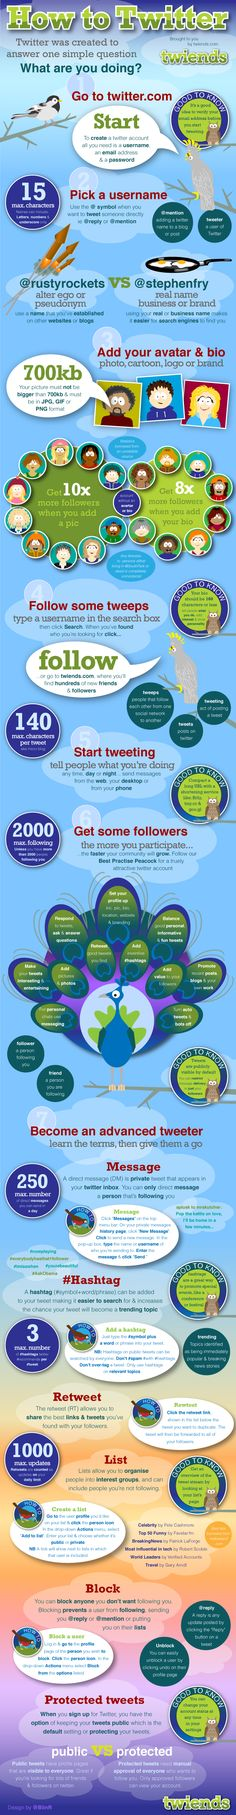 How To Twitter Audience #infographic